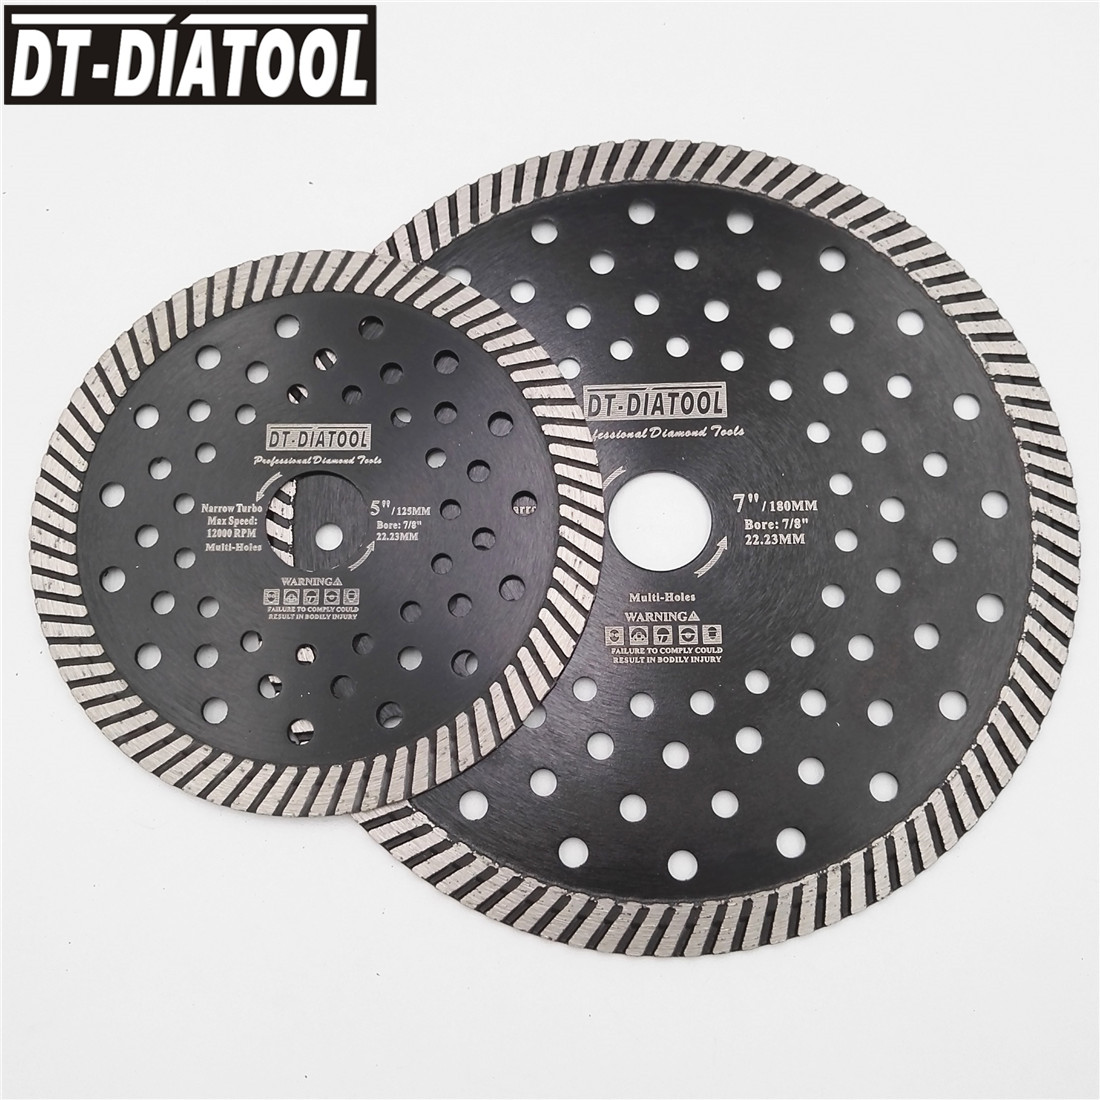 DT-DIATOOL 2pcs Diamond Blade Narrow Turbo Multi Hole Saw Blade cutting disc Dia 105mm 115mm 125mm 180mm 230mm Grinding wheel